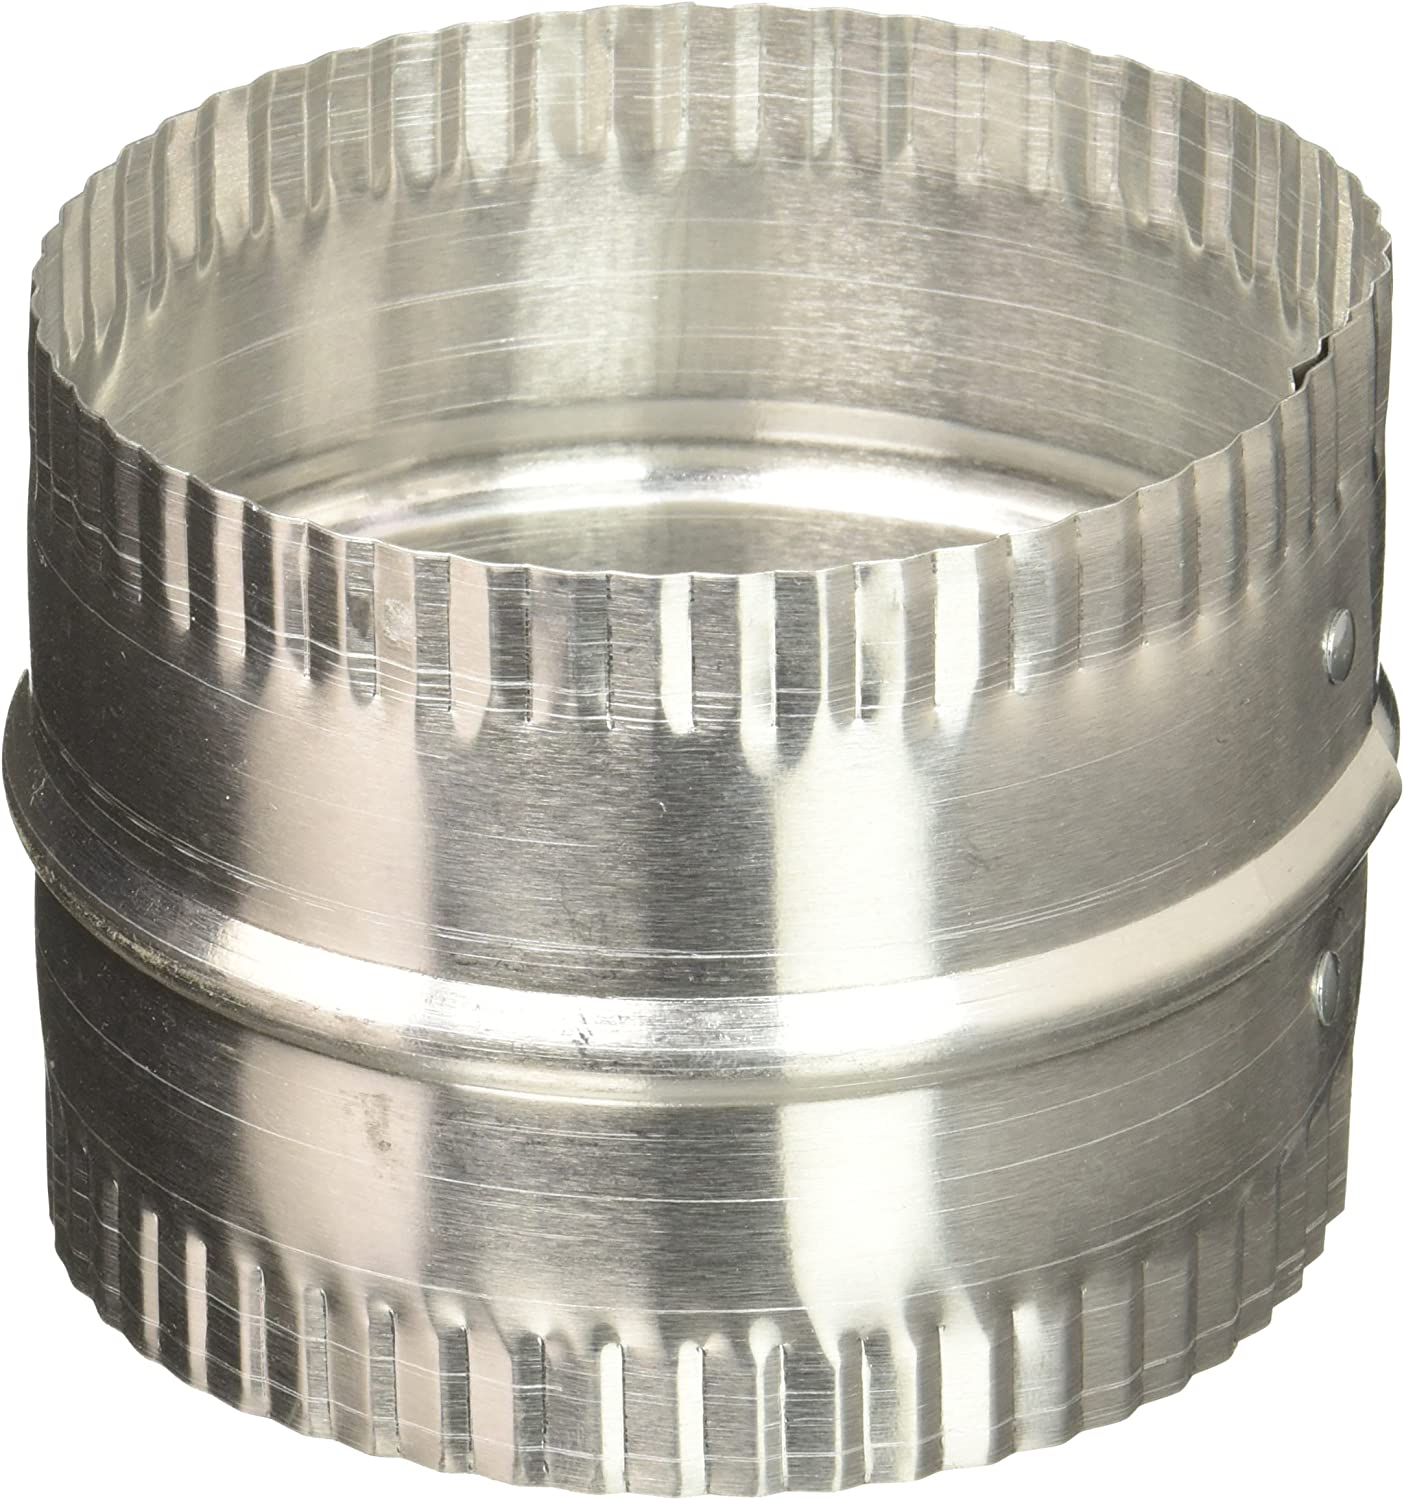 High quality new Lambro Cheap bargain 244 Connector Duct